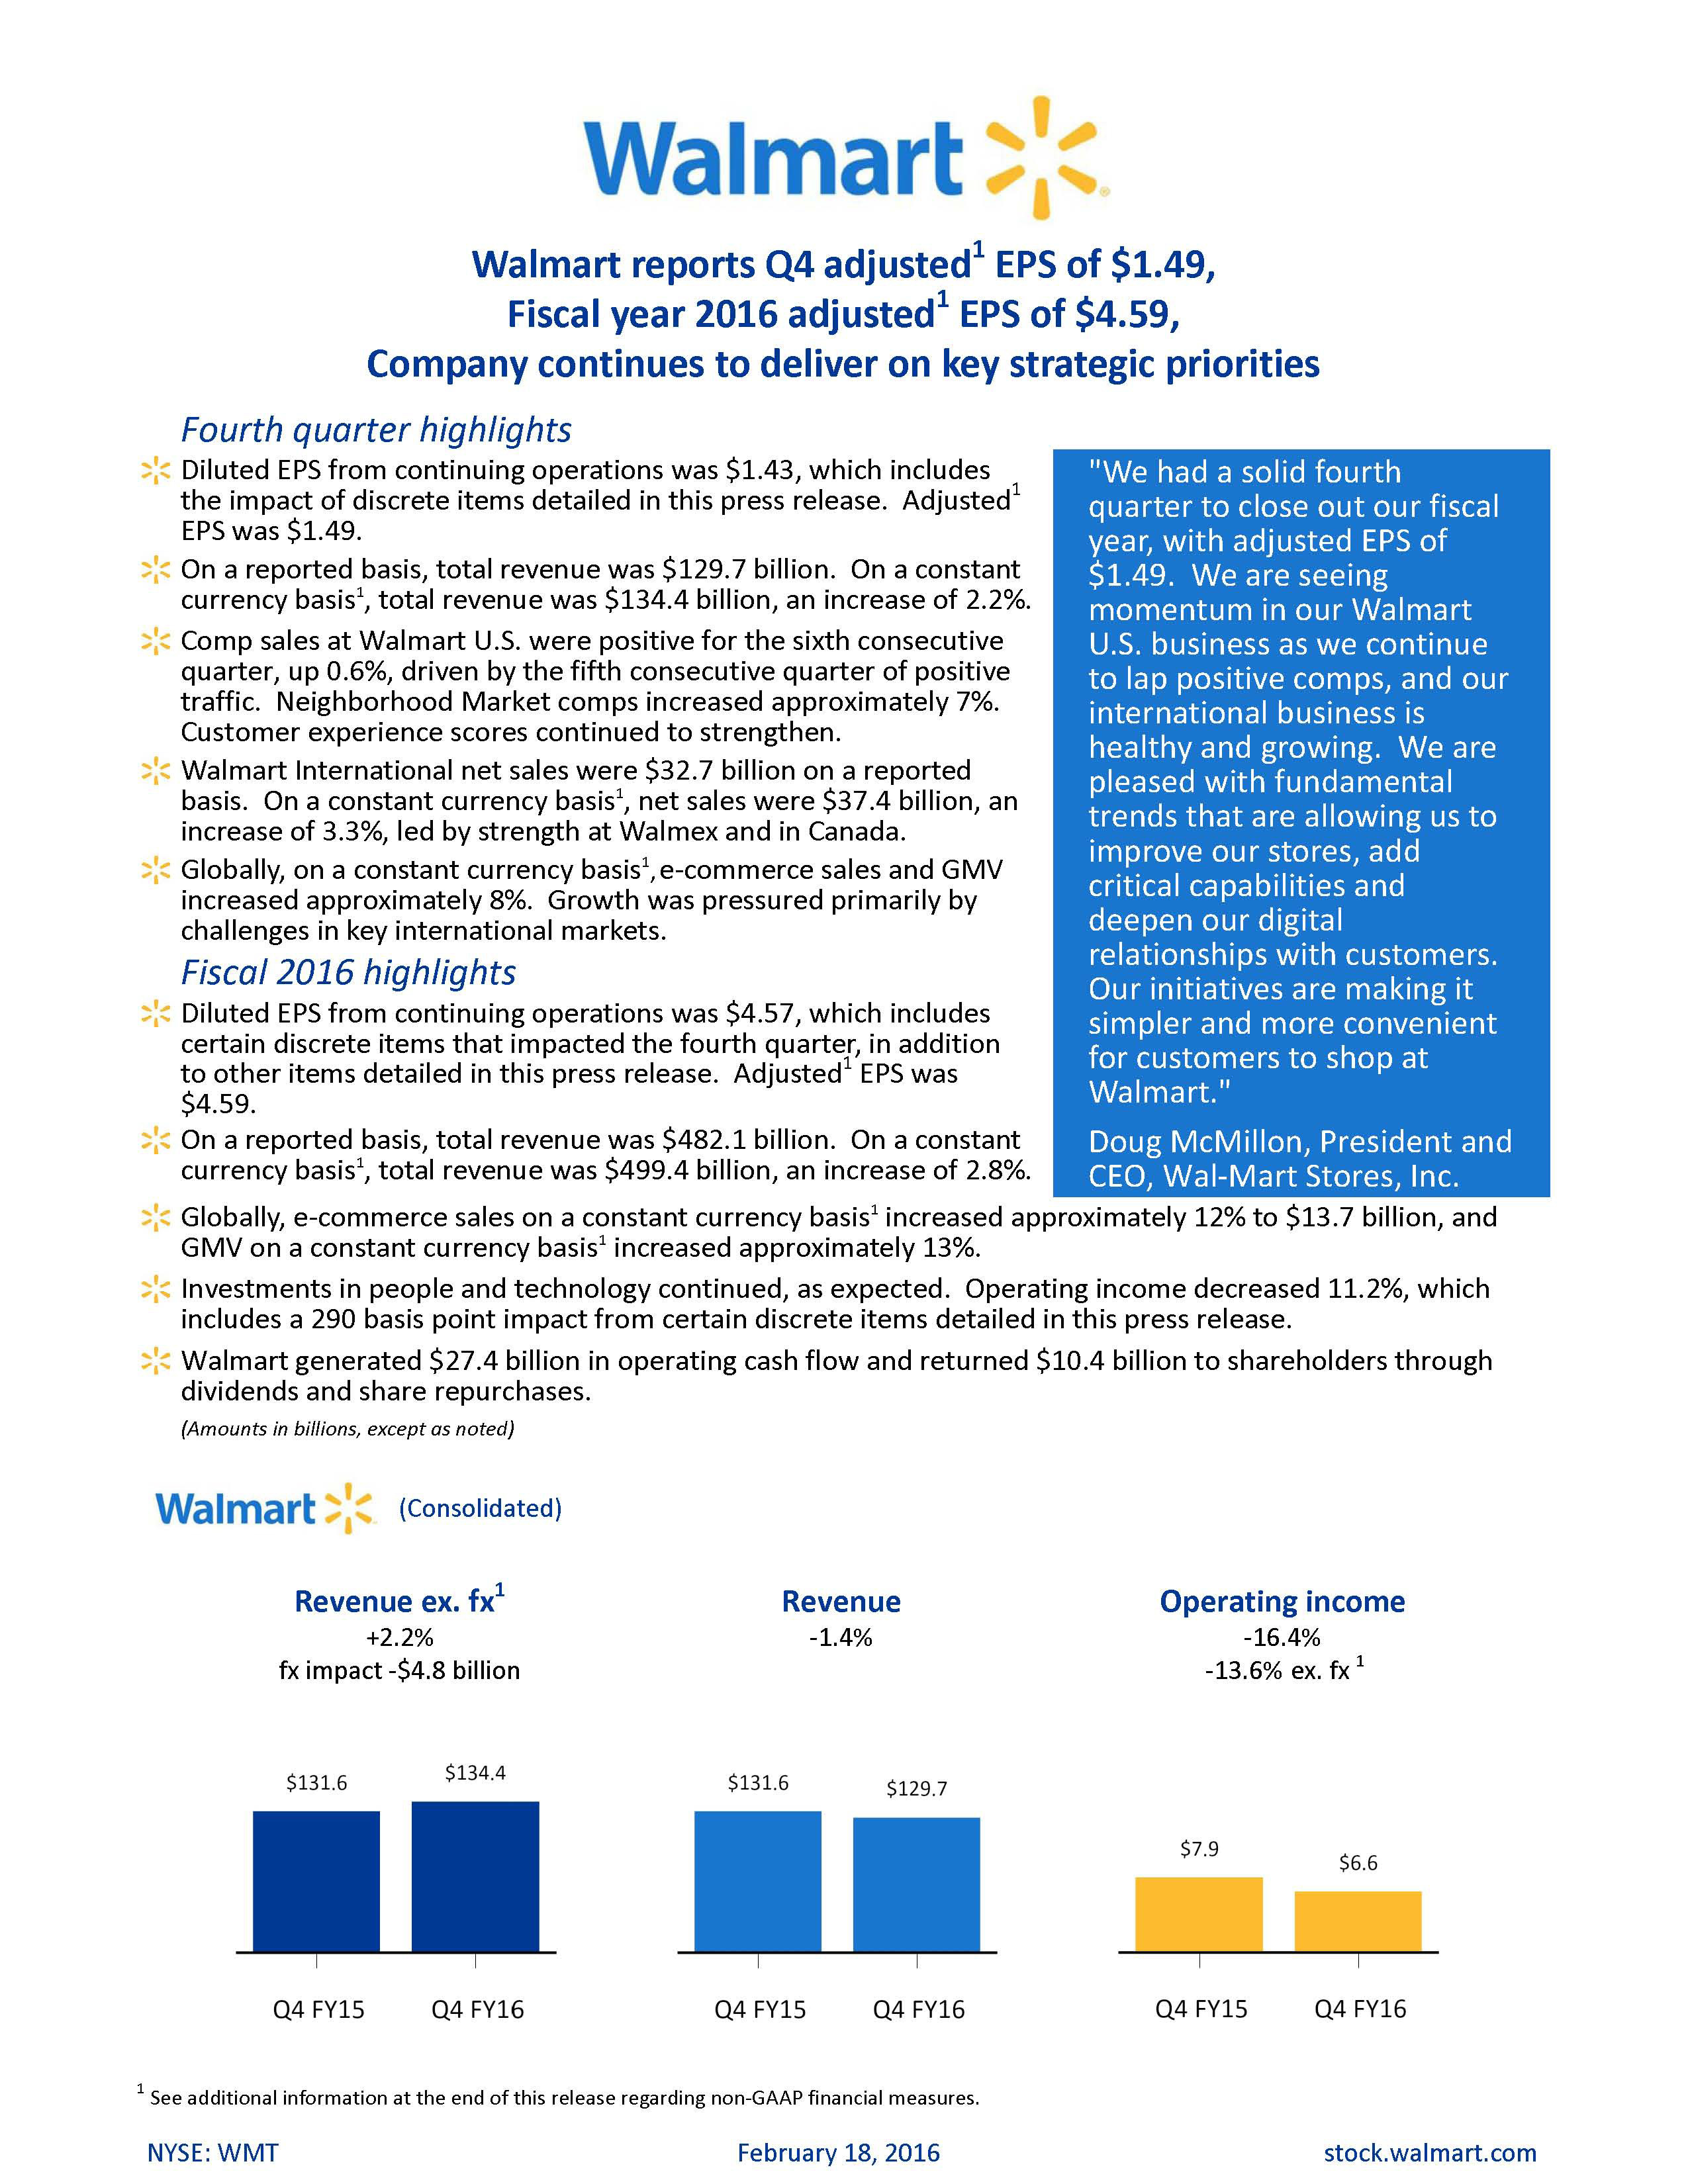 Walmart reports Q4 adjusted EPS of $1.49, Fiscal year 2016 adjusted ...